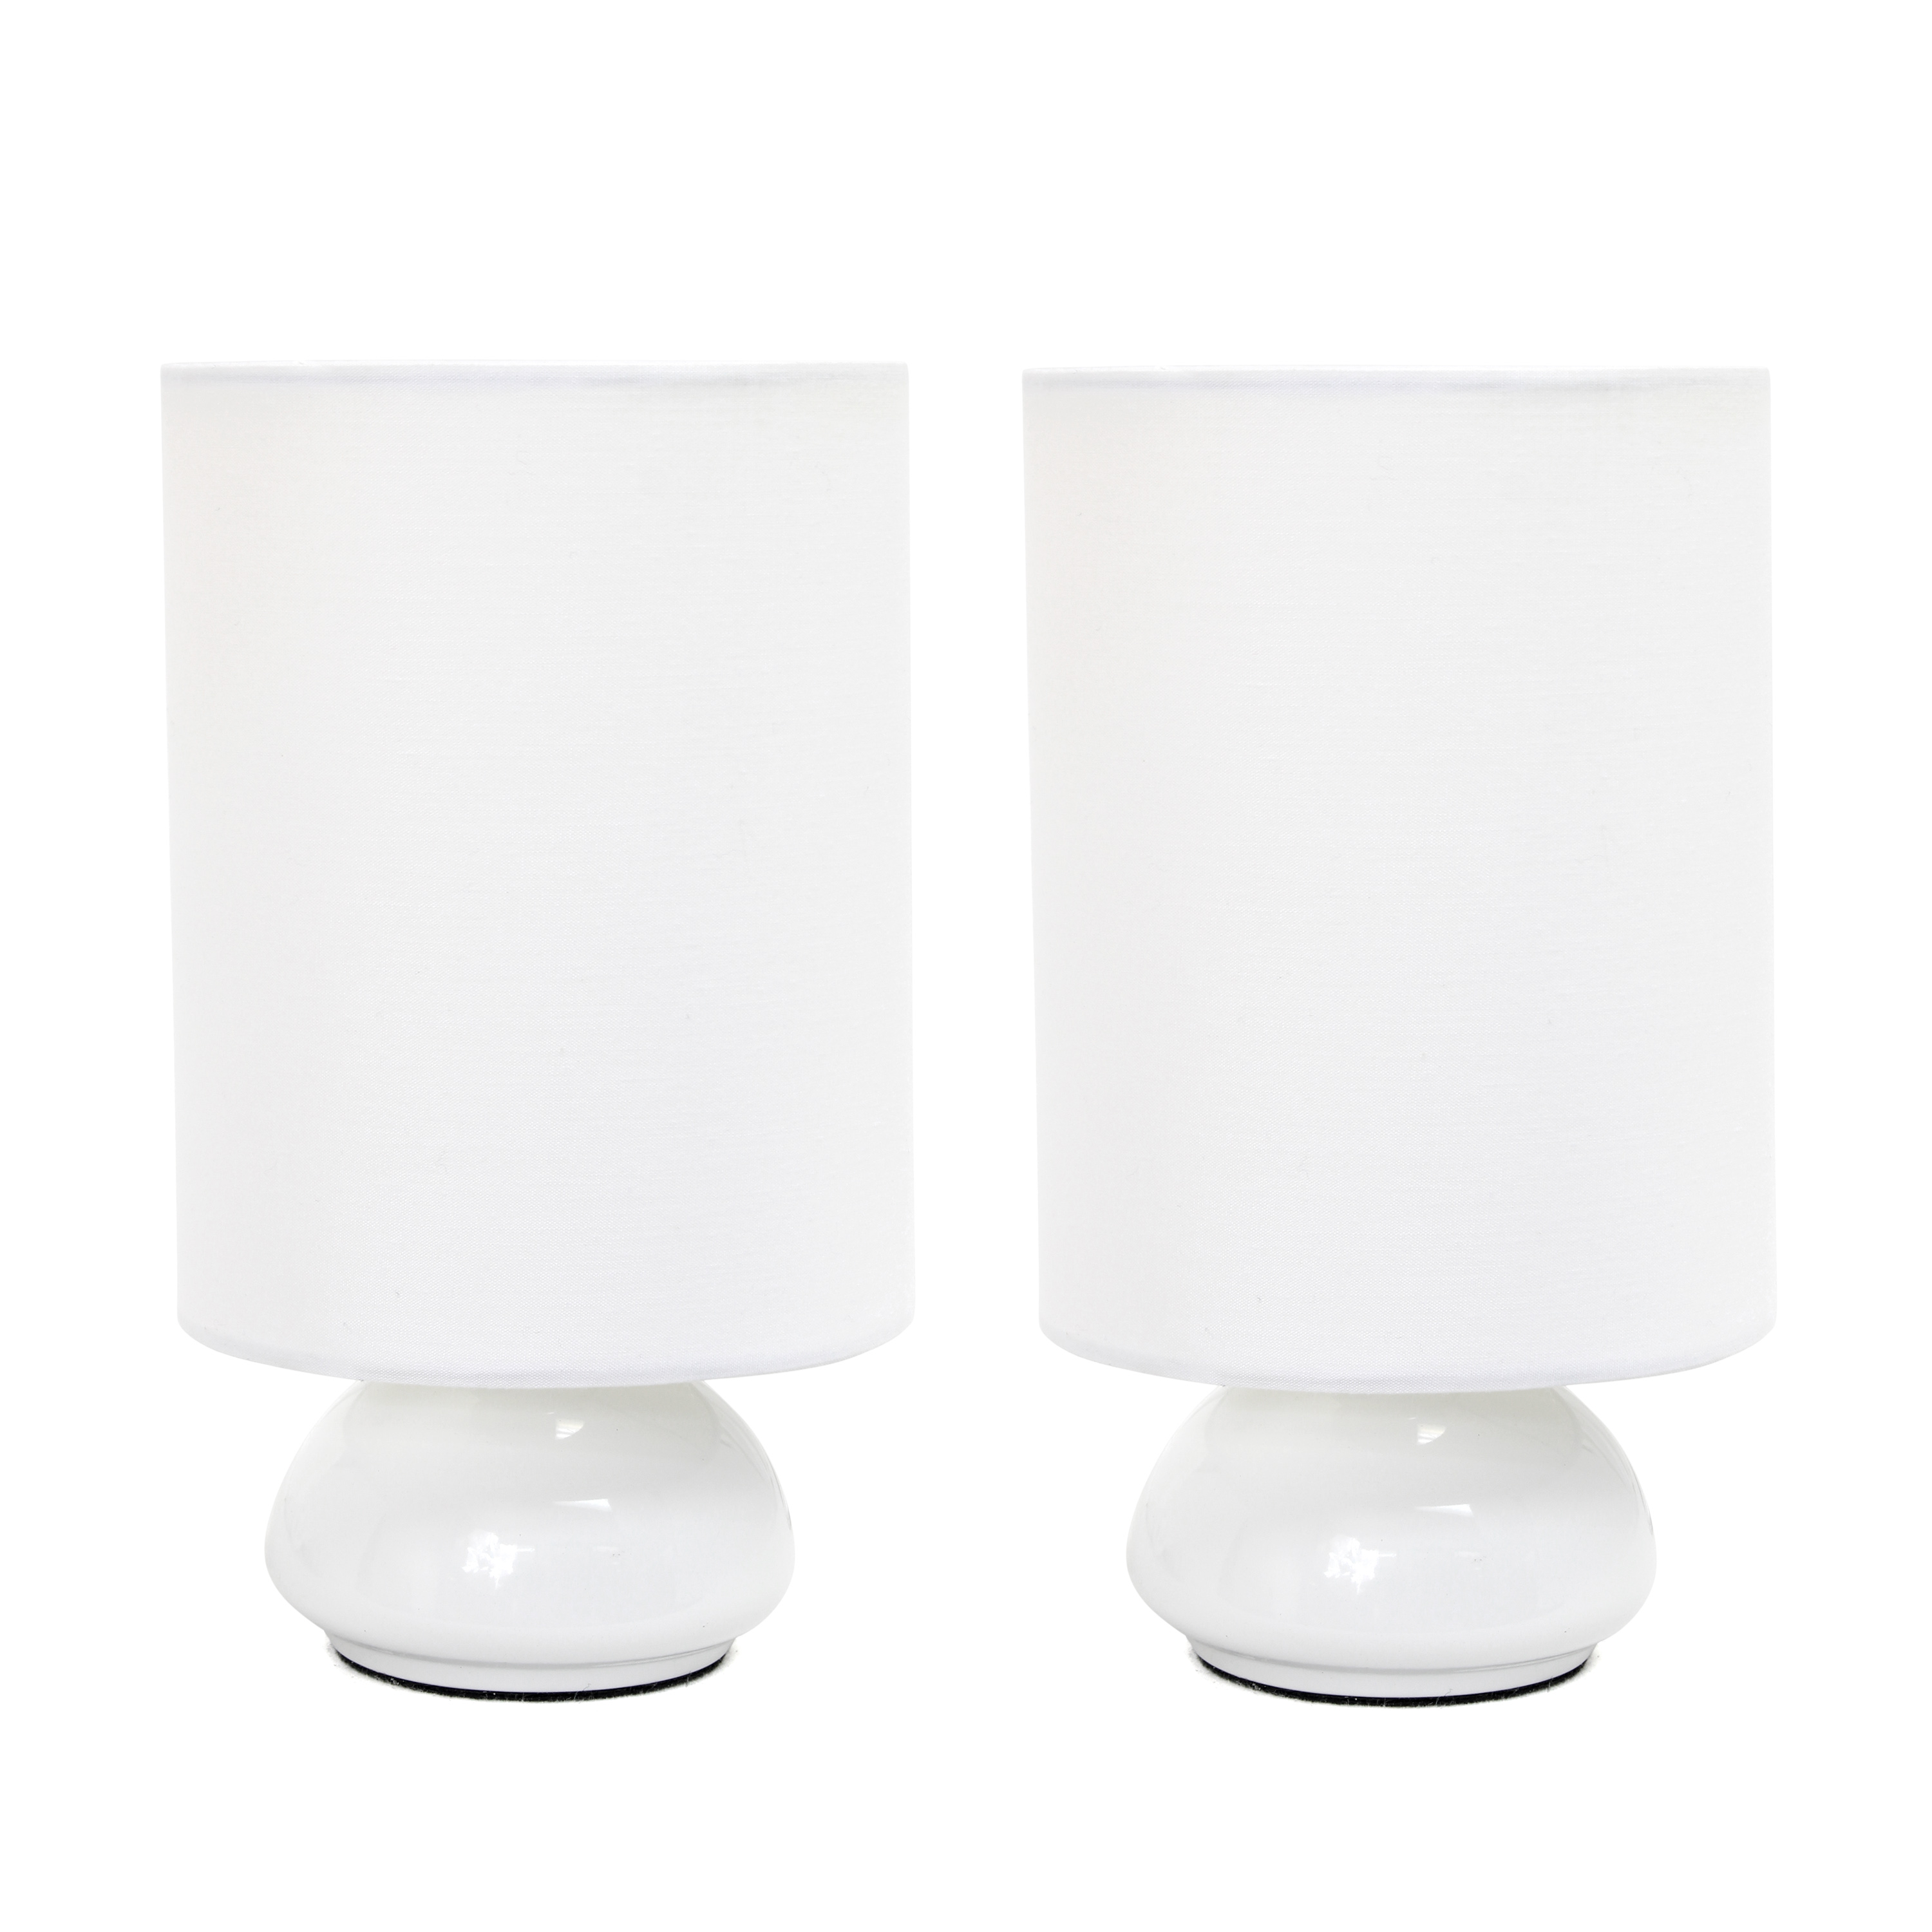 Simple Designs Gemini Colors 2 Pack Mini Touch Table Lamp Set with Fabric Shades, White